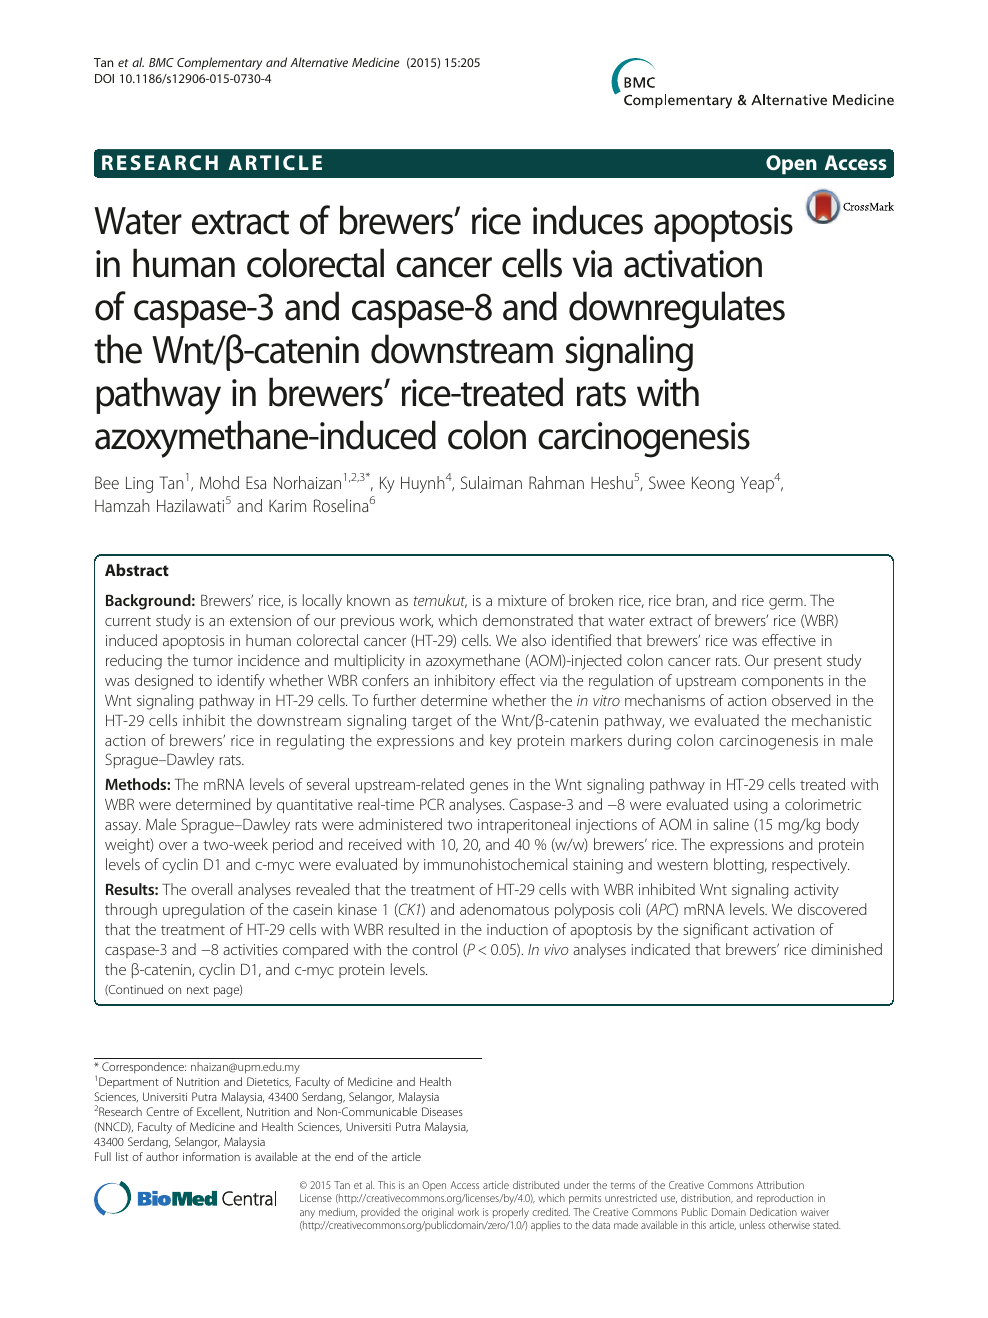 Water Extract Of Brewers Rice Induces Apoptosis In Human Colorectal Cancer Cells Via Activation Of Caspase 3 And Caspase 8 And Downregulates The Wnt B Catenin Downstream Signaling Pathway In Brewers Rice Treated Rats With Azoxymethane Induced Colon